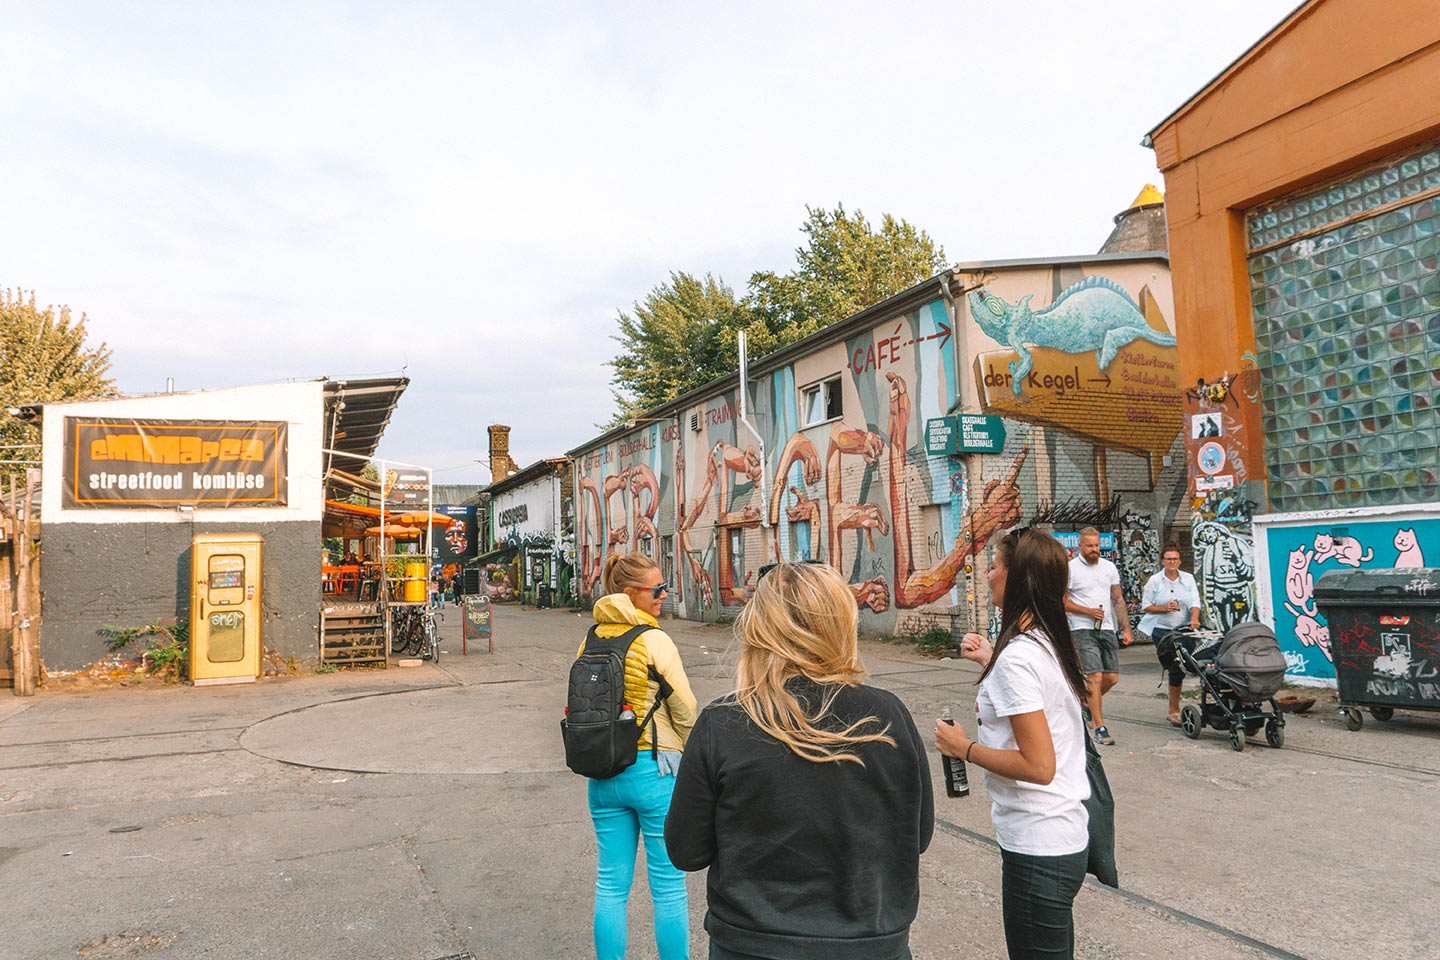 How to spend a weekend in Berlin   Travel Blog   Things to do   secret food tours